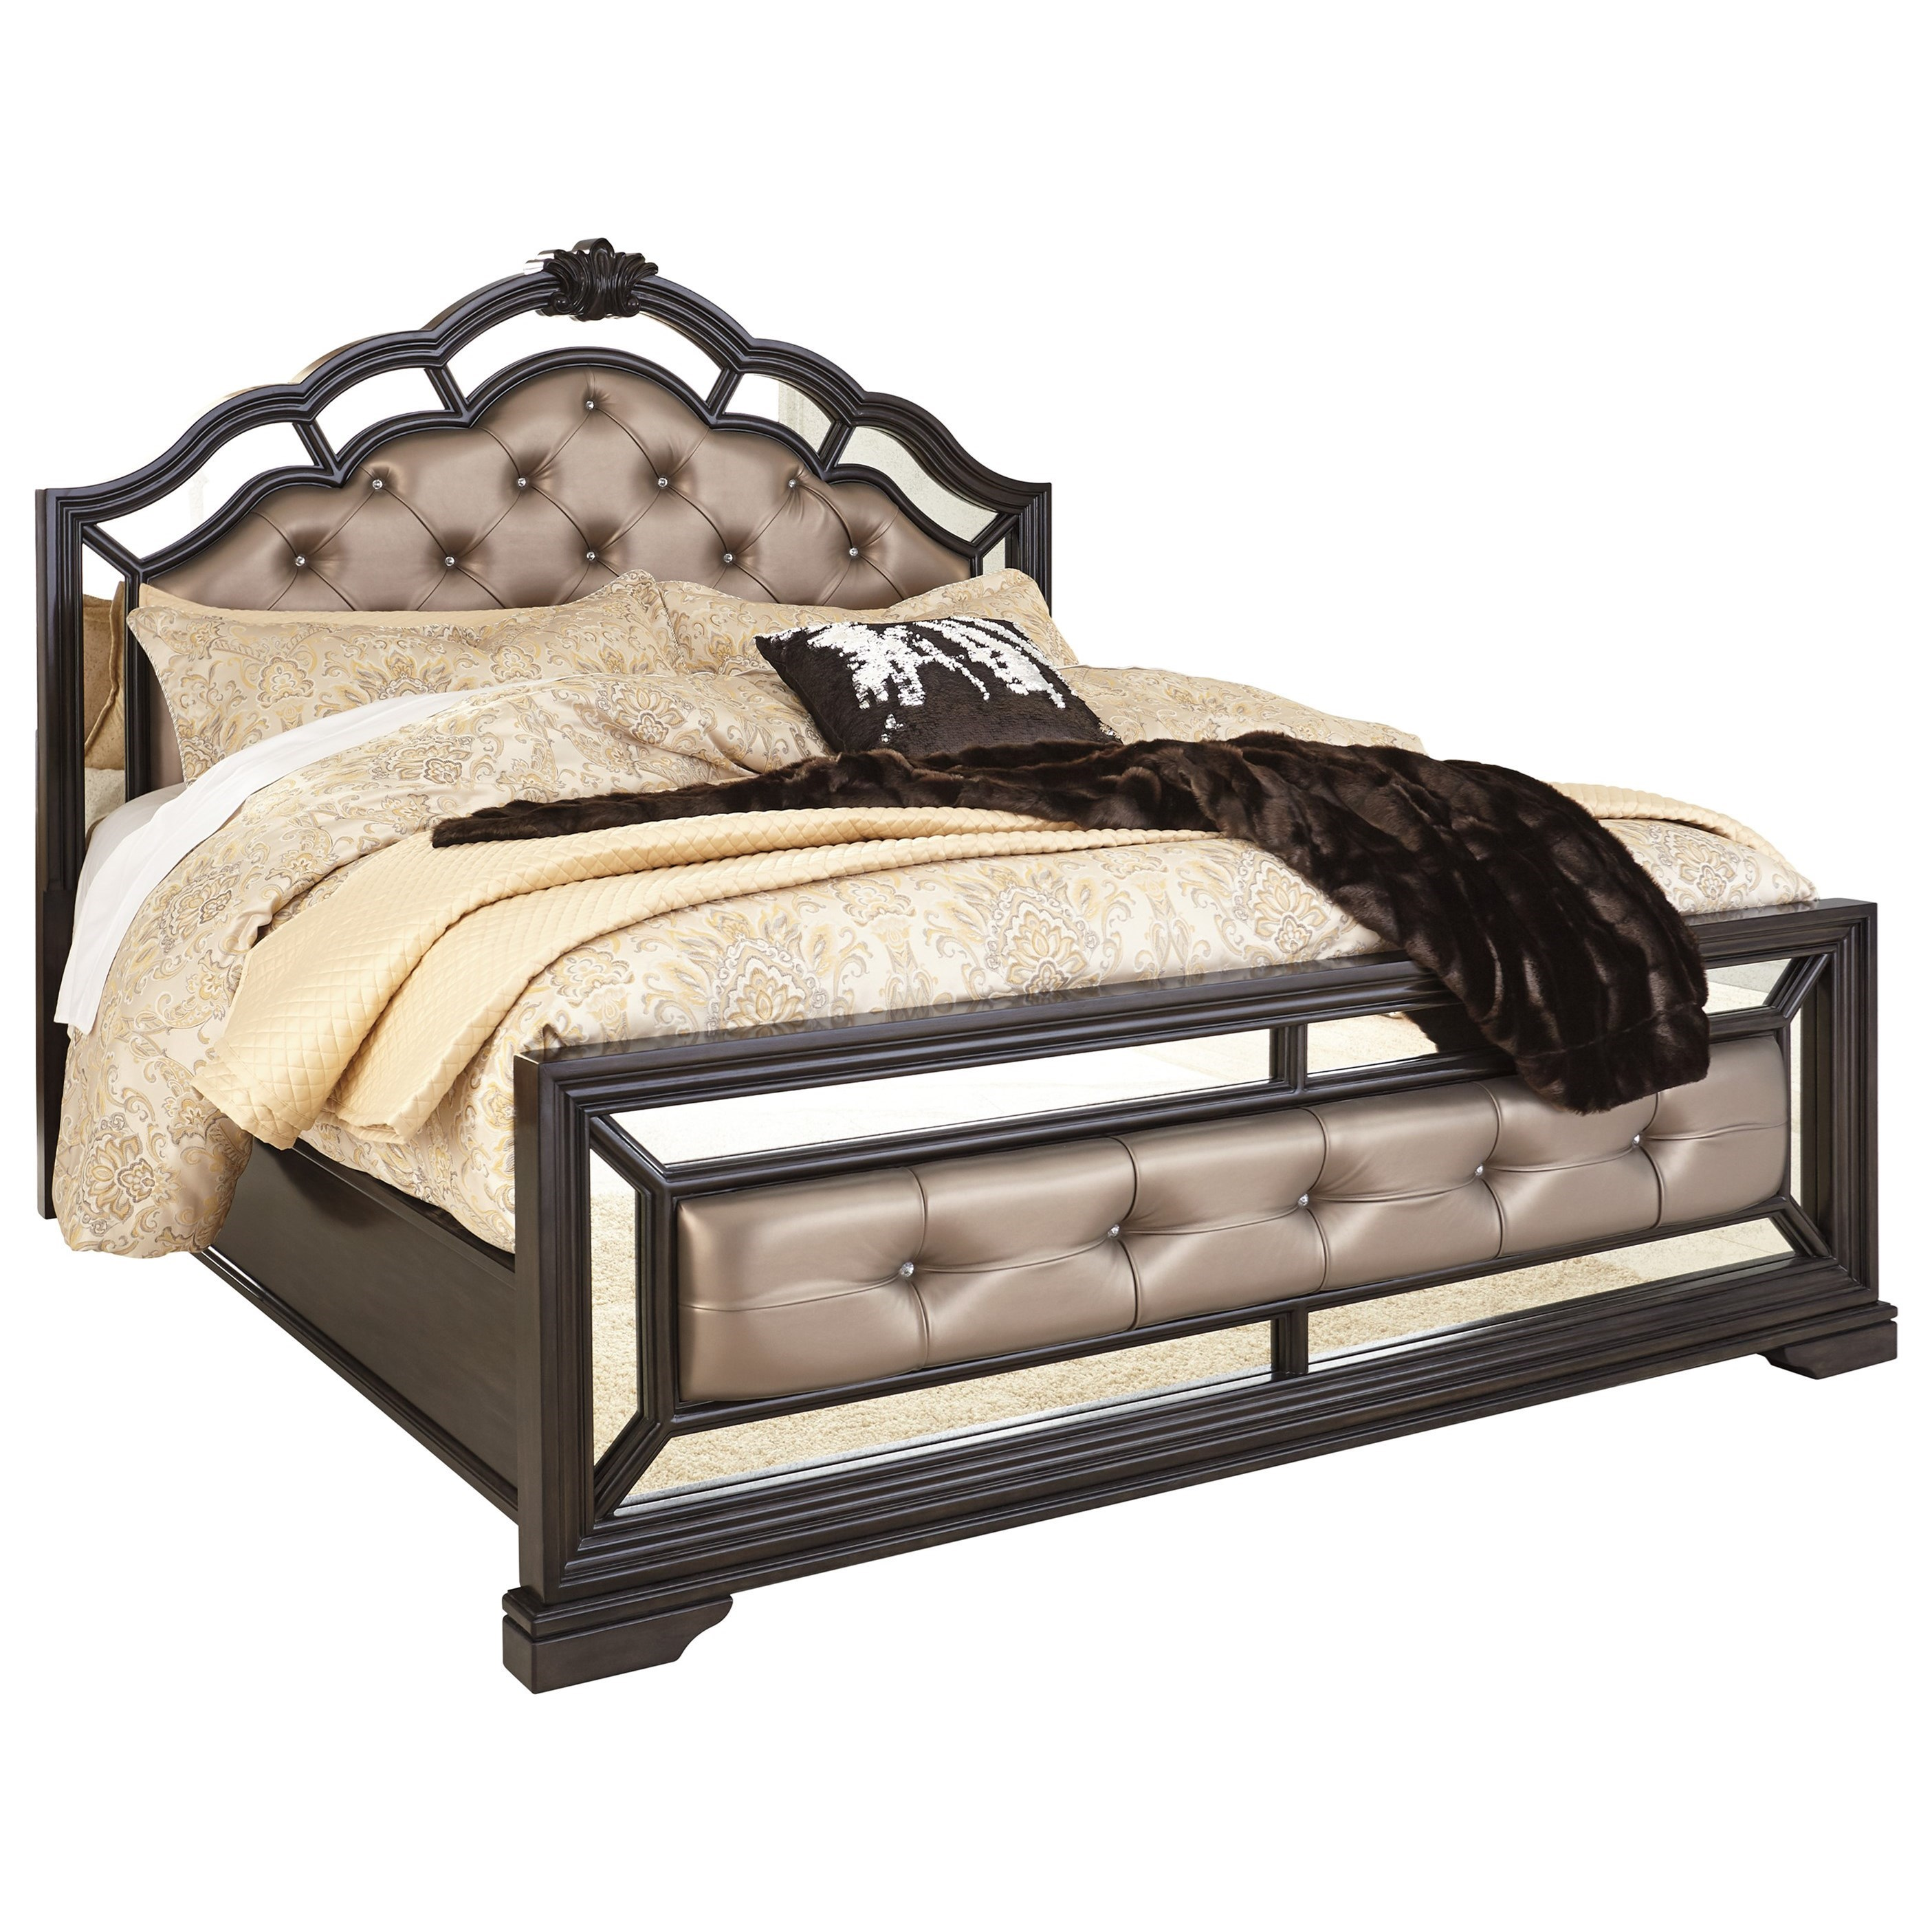 Signature Design by Ashley Quinshire Queen Panel Bed - Item Number: B728-57+96+54